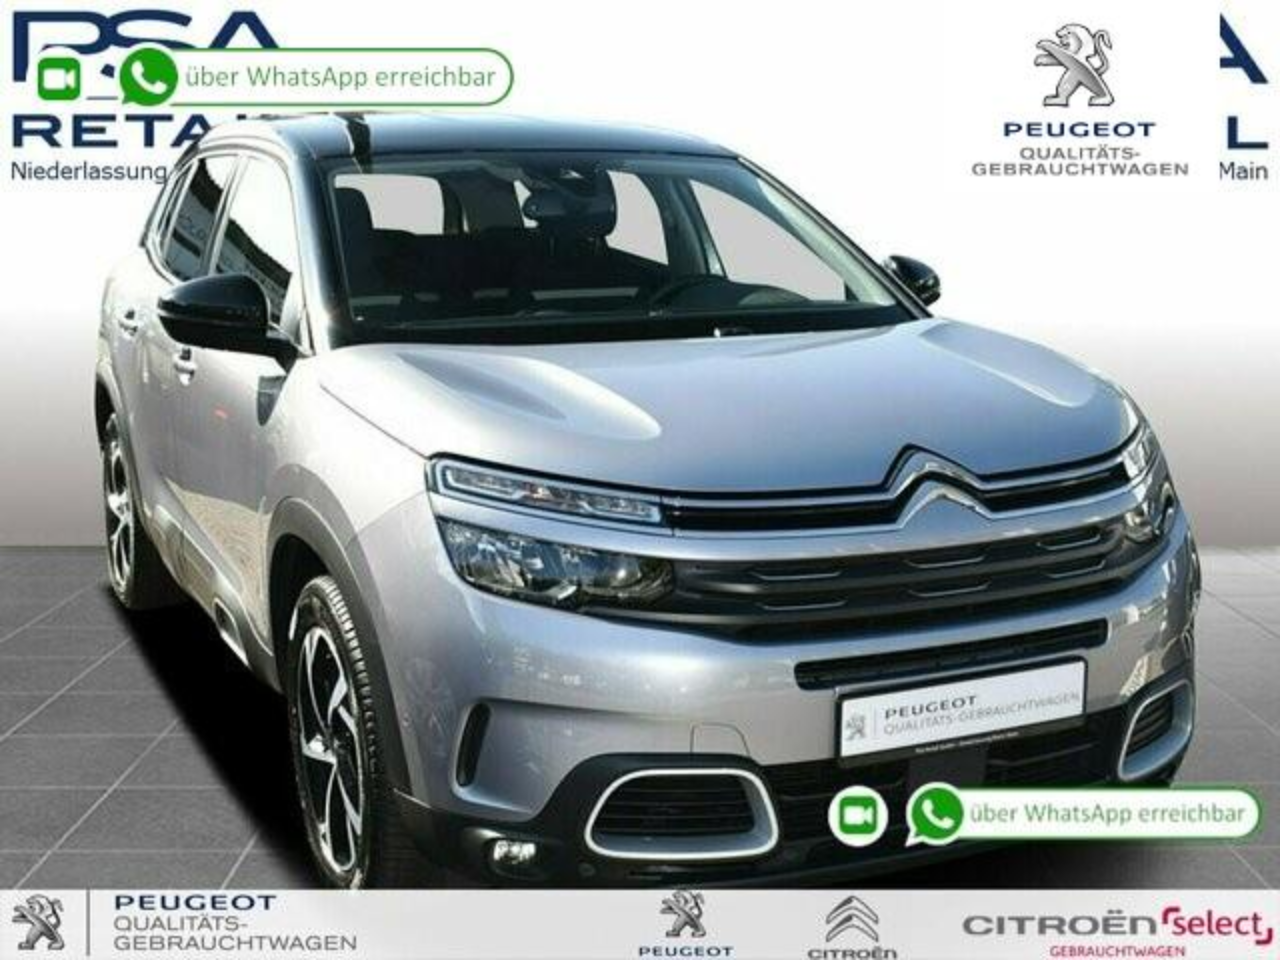 Citroën C5 Aircross Pure Tech 130 S&S FEEL *NAVI*SITZH.*KAMERA*